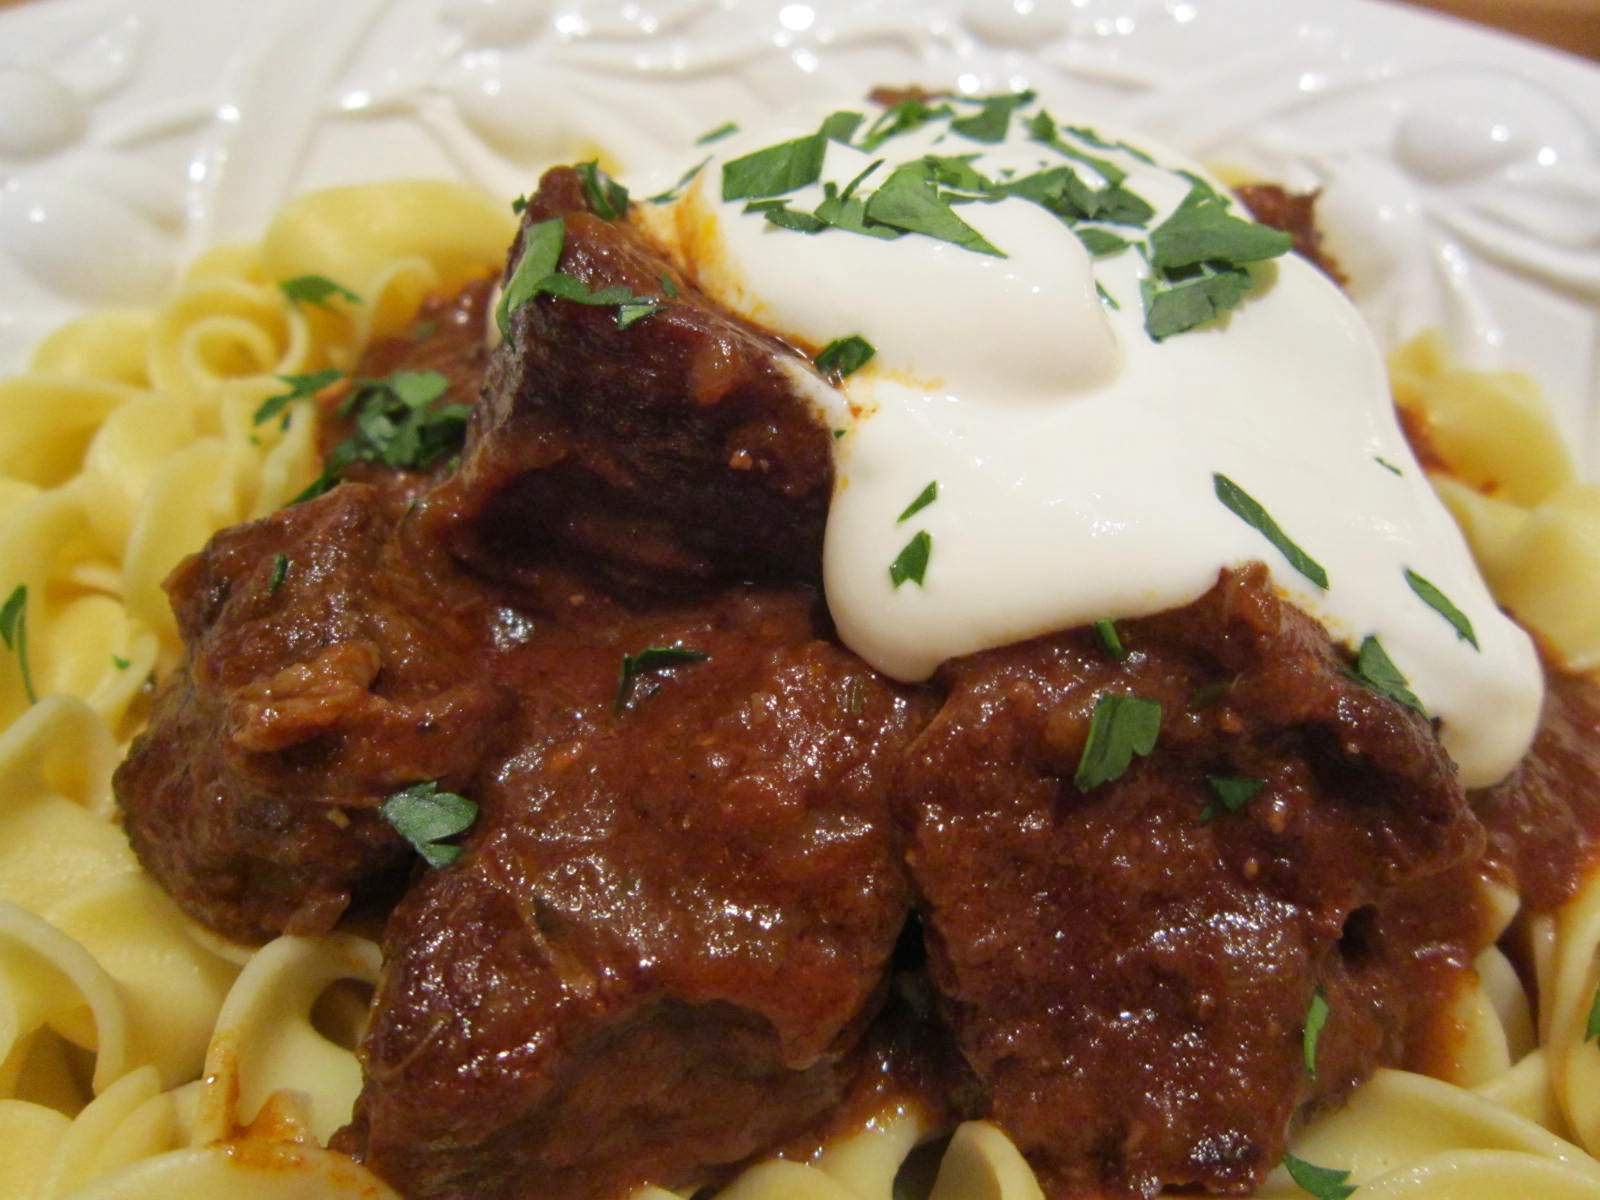 beef goulash with paprika goulash classic goulash veal goulash ...